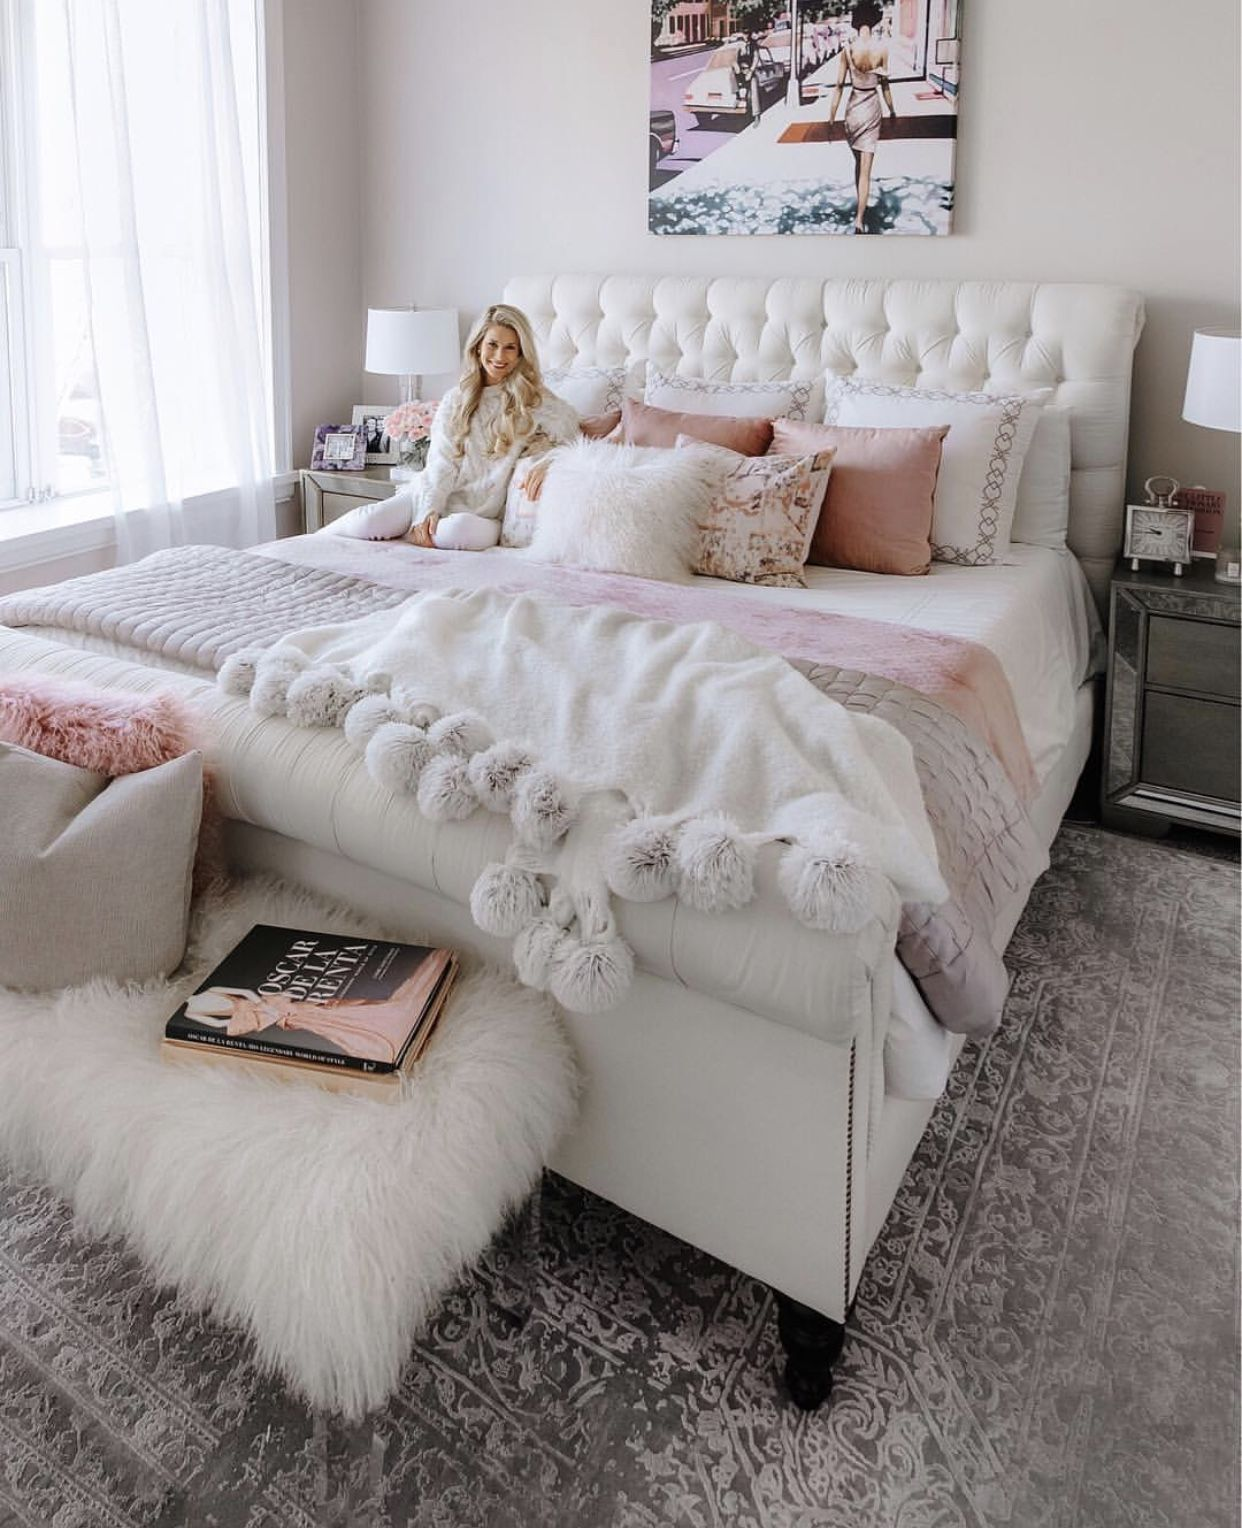 The 3 Perks To Furniture Shopping Online Home Decor Bedroom Diy Apartment Decor Bedroom Decor